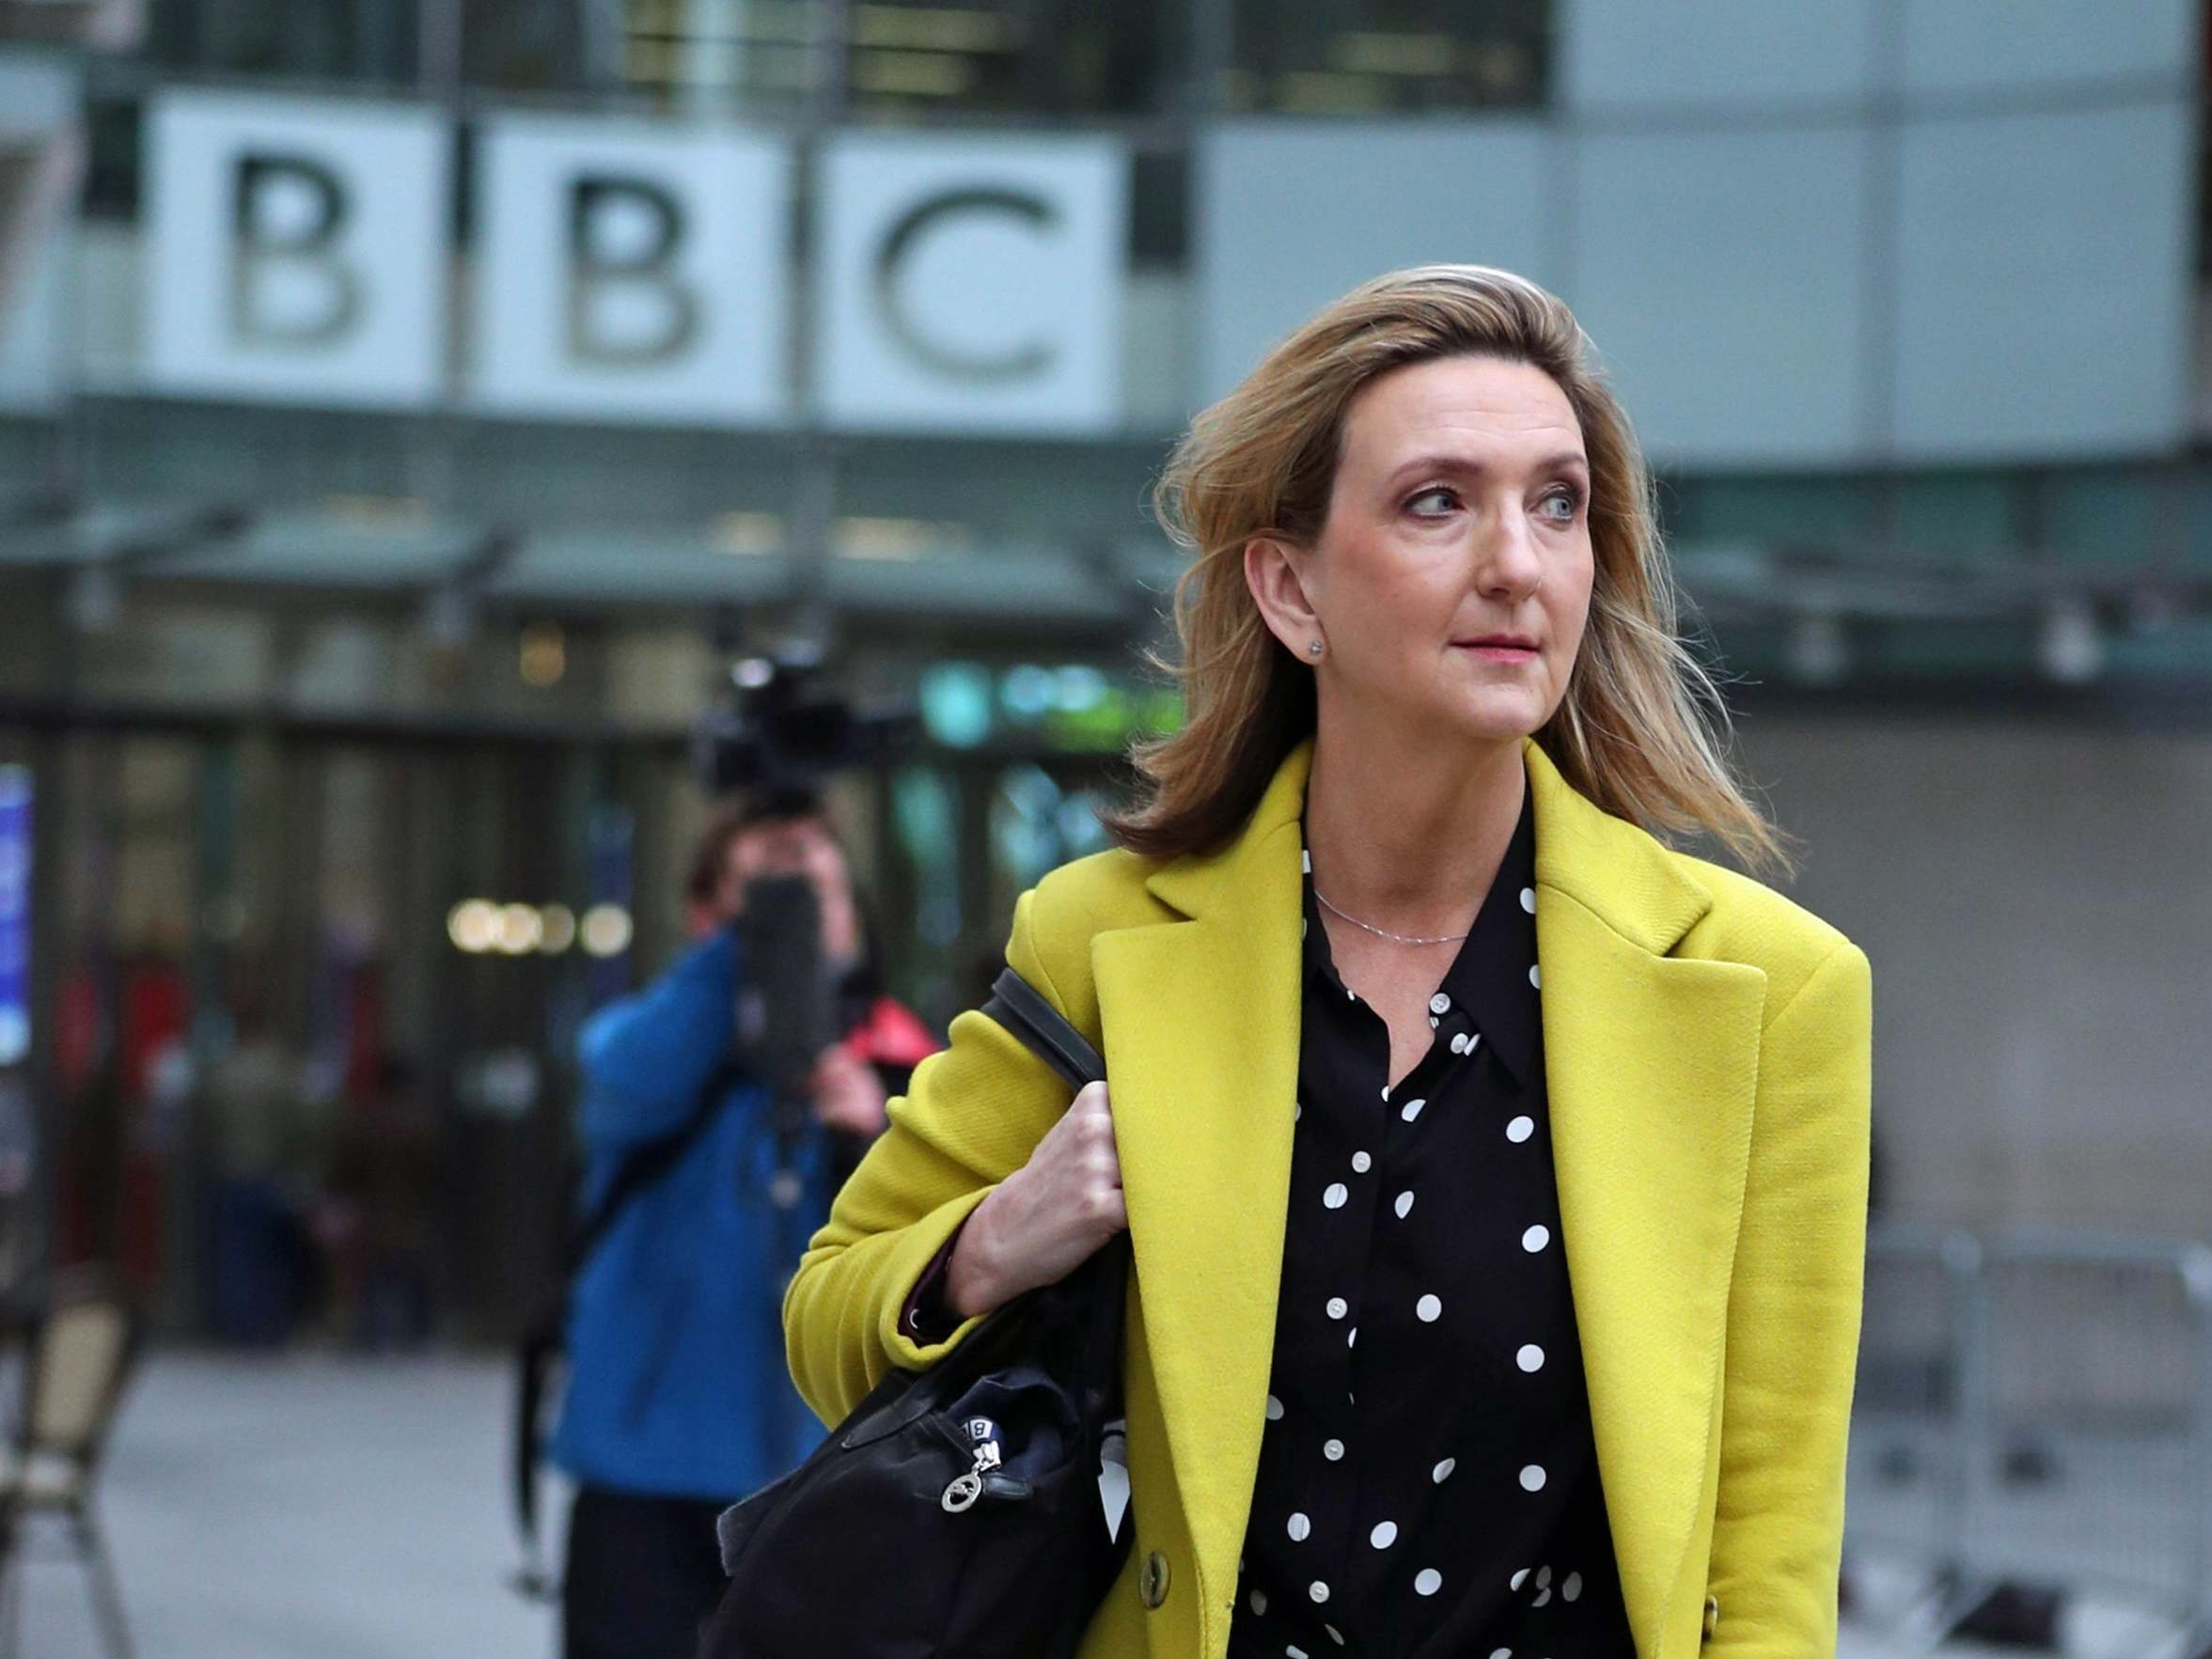 Bbc Cuts Victoria Derbyshire Accuses Corporation Of Unclear Targets The Independent The Independent